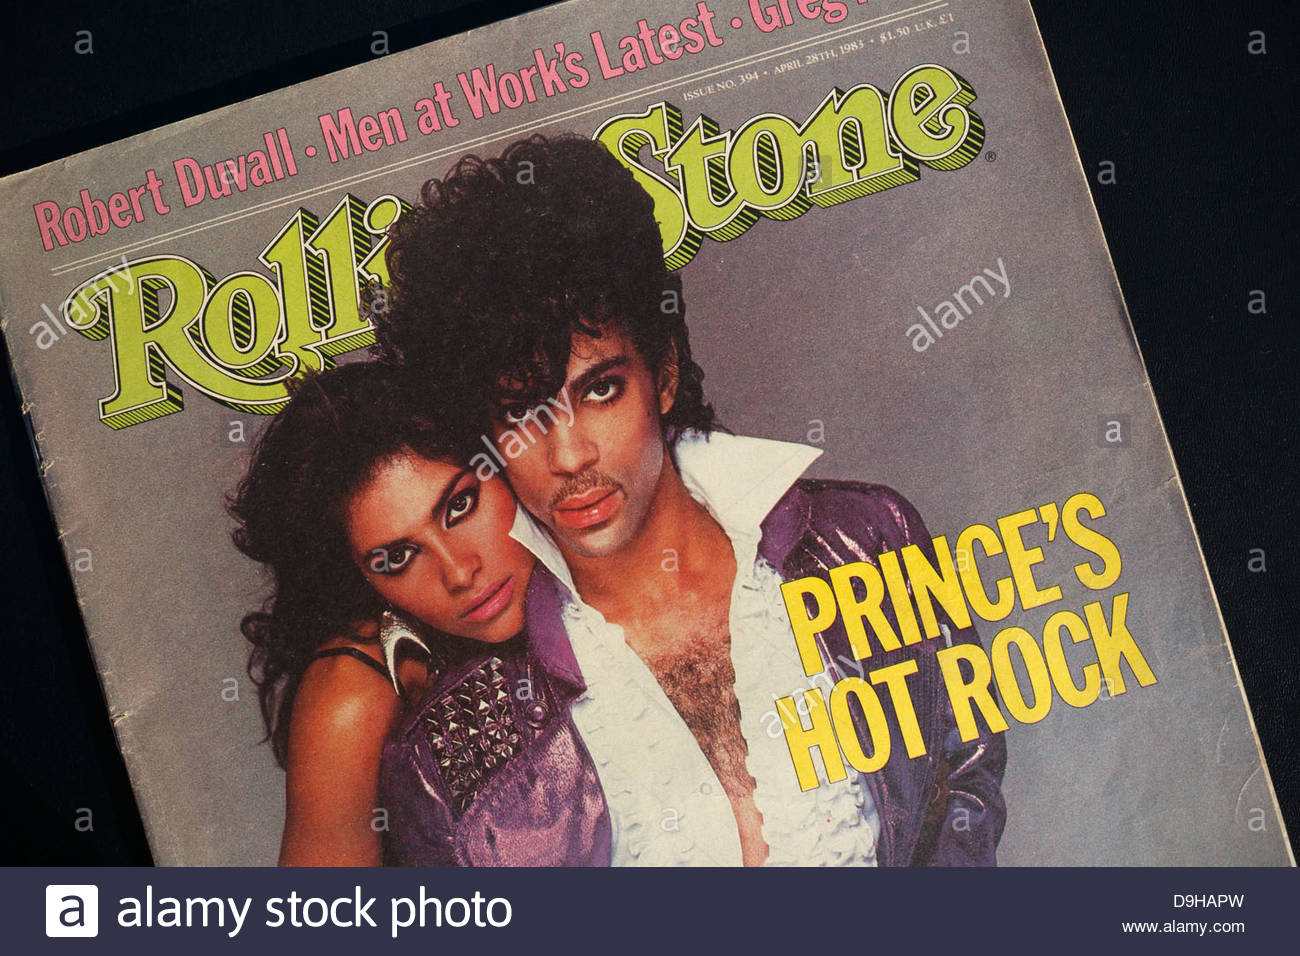 Rolling Stone magazine cover with Prince and Vanity